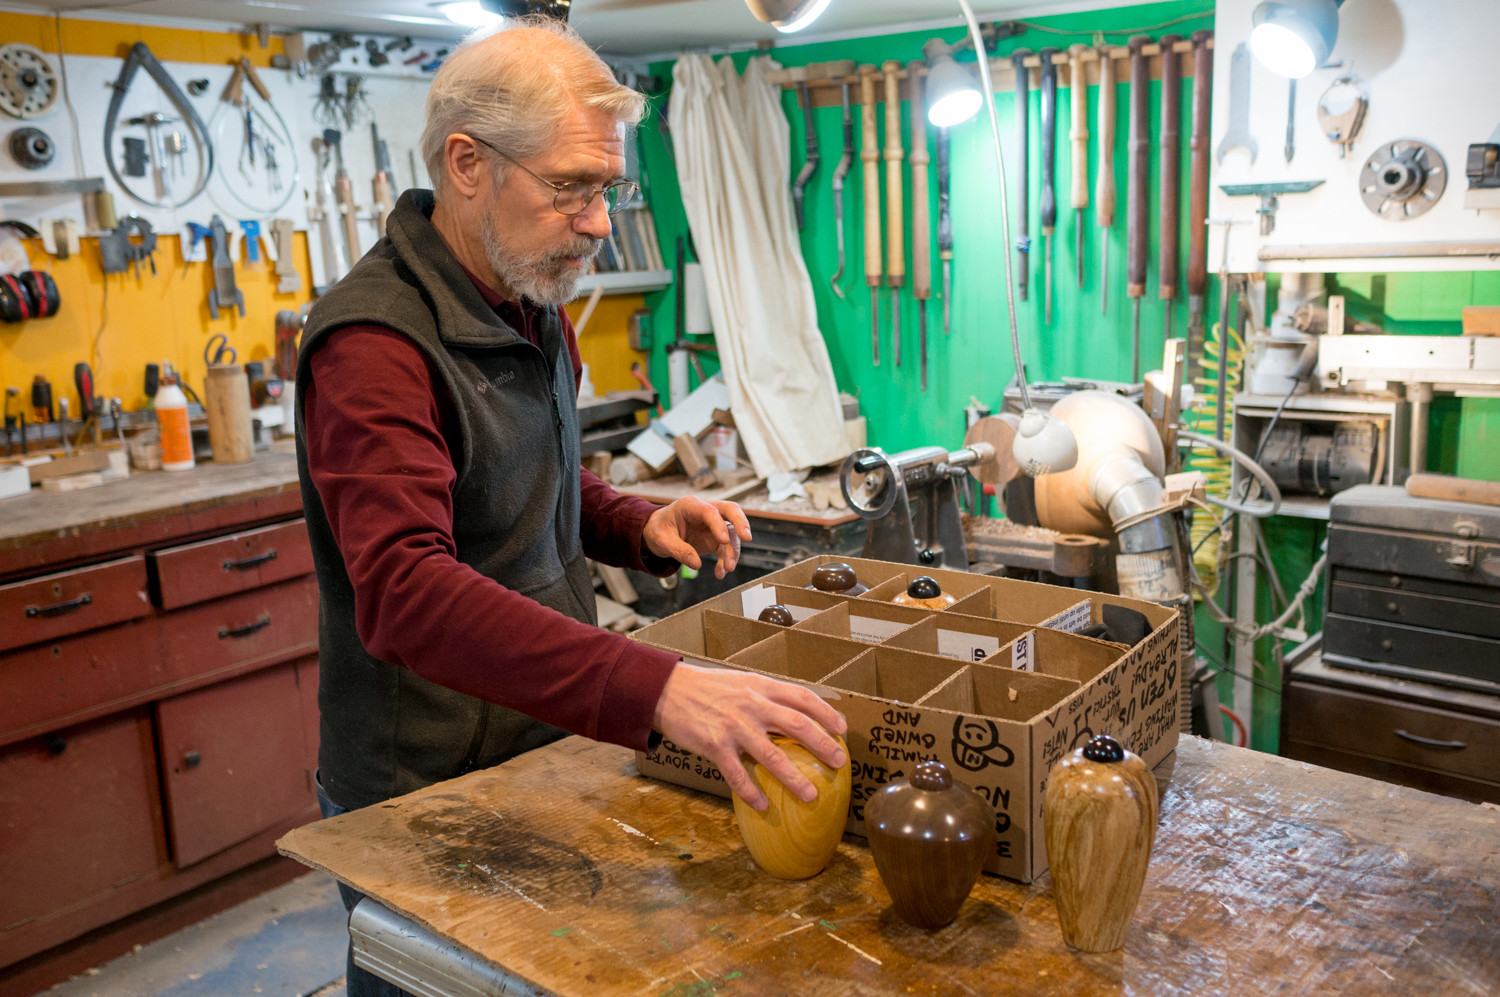 Ivan Braun places several urns designed for cats on the workbench in the basement of his home. Braun is a professional woodturner who, in addition the bowls and vases he's known for, also makes urns specifically for cats.